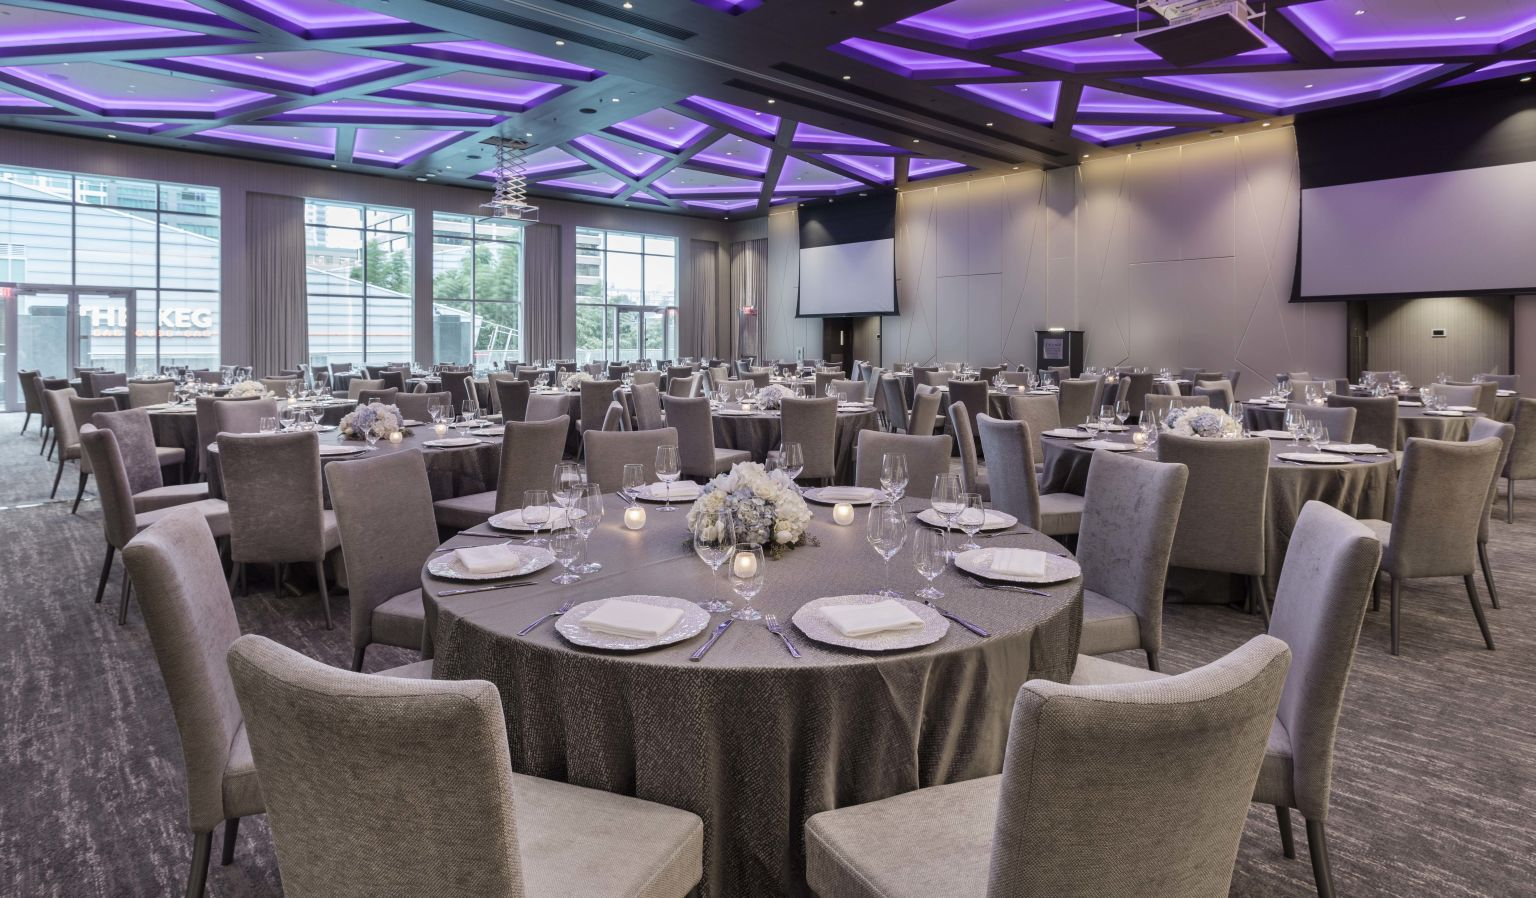 hotel interior banquet room with oval tables, chairs